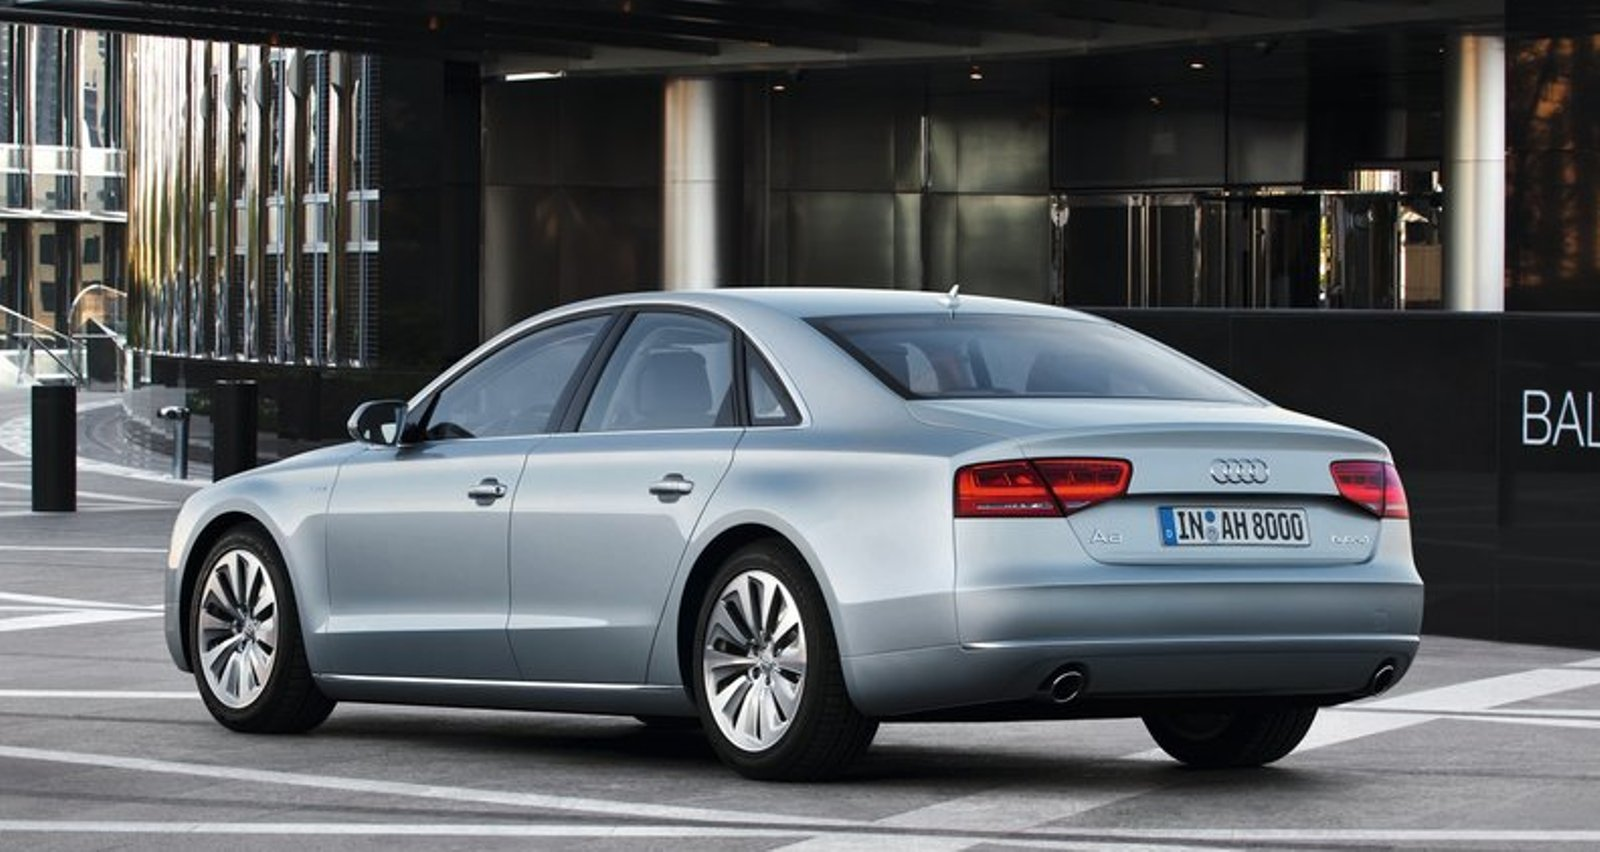 2013 audi a8 review and pictures. Black Bedroom Furniture Sets. Home Design Ideas